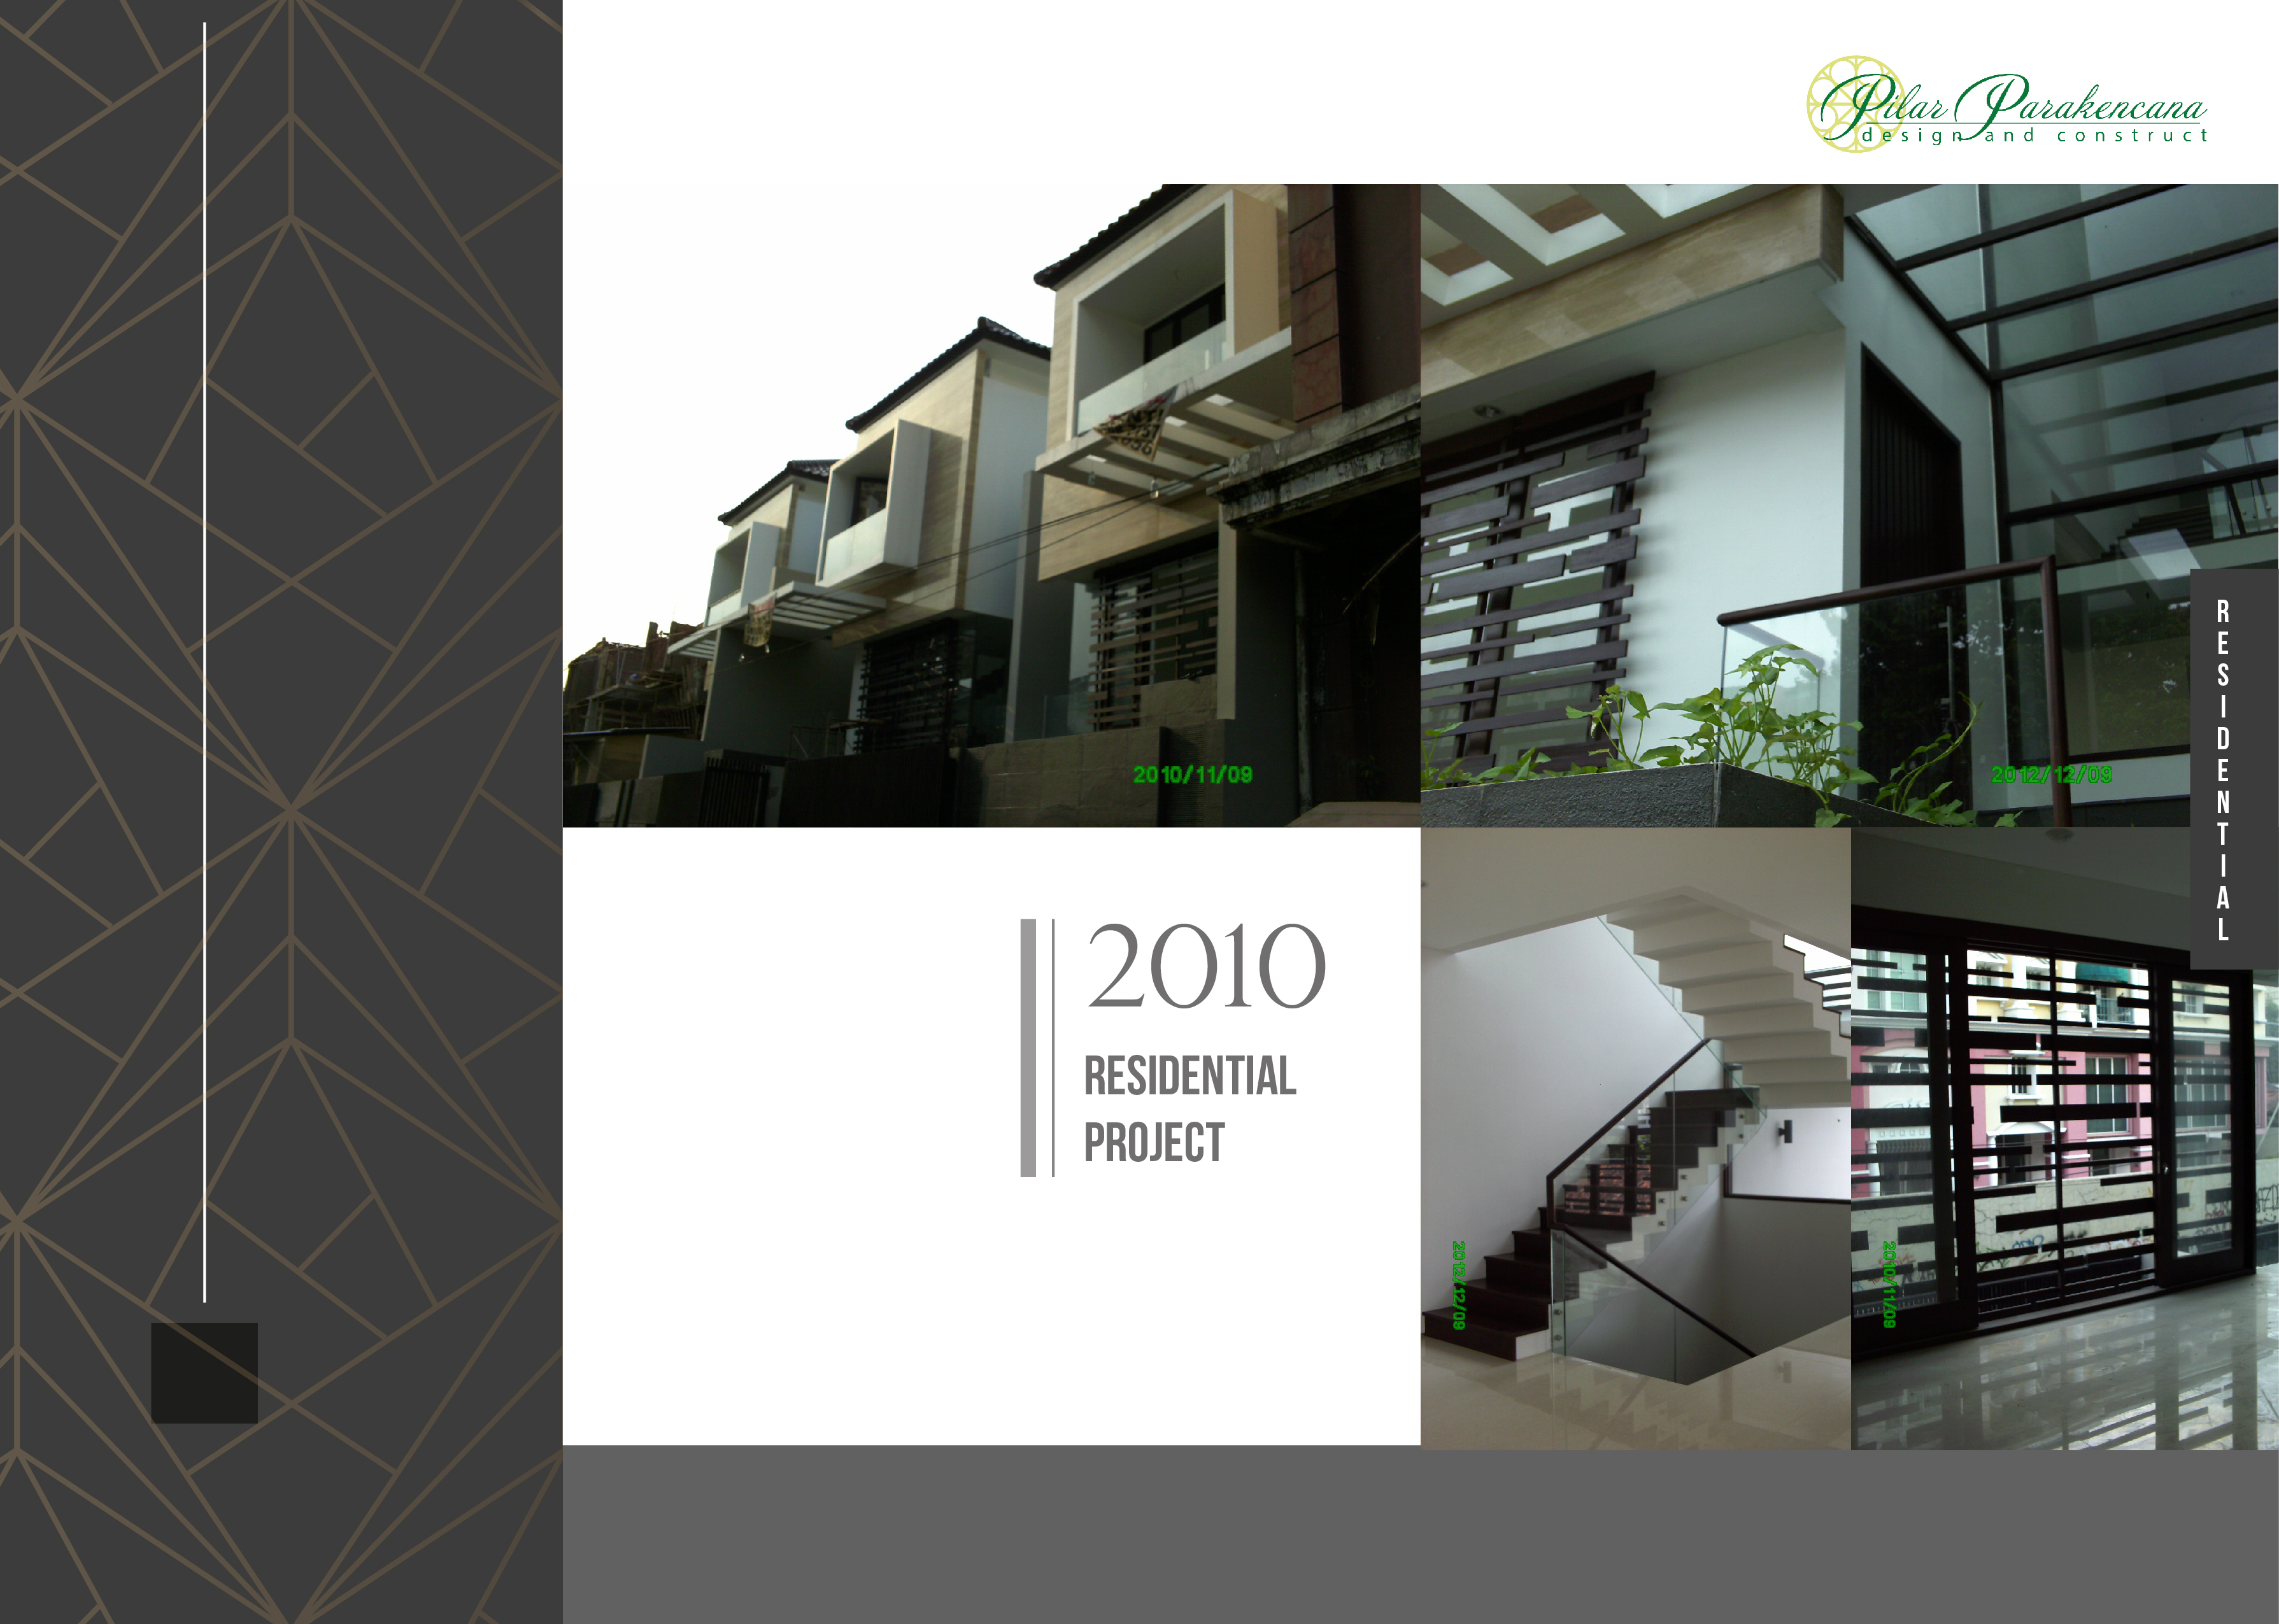 Residential Project - 2010